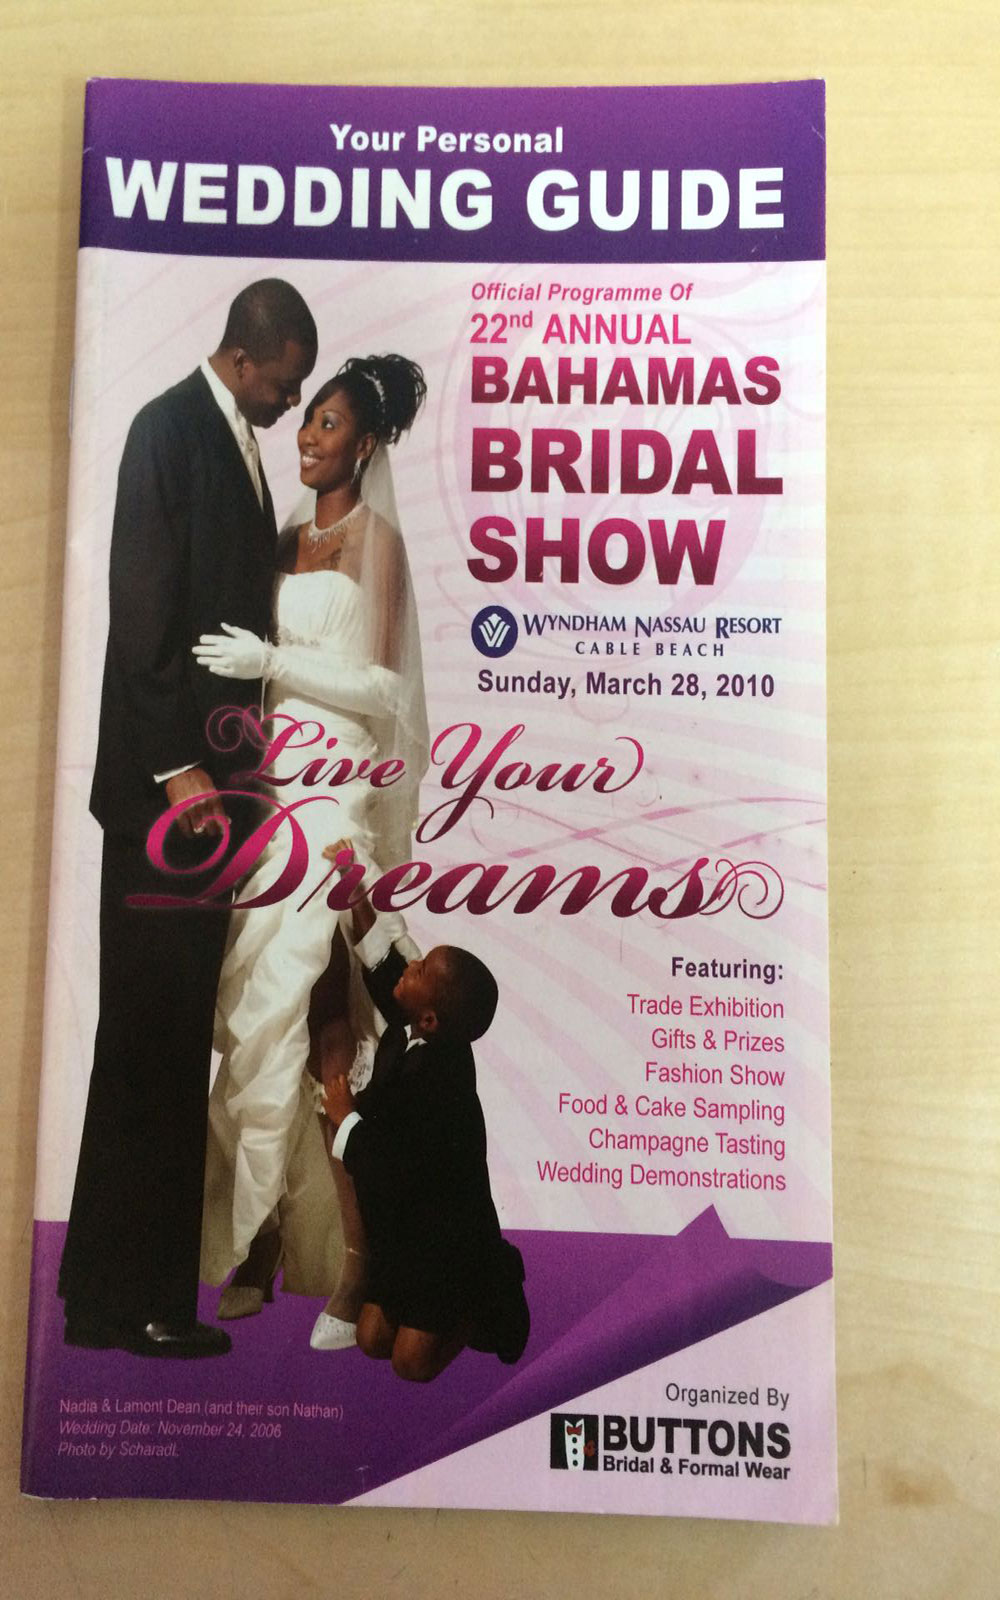 The Wedding Guide 2010